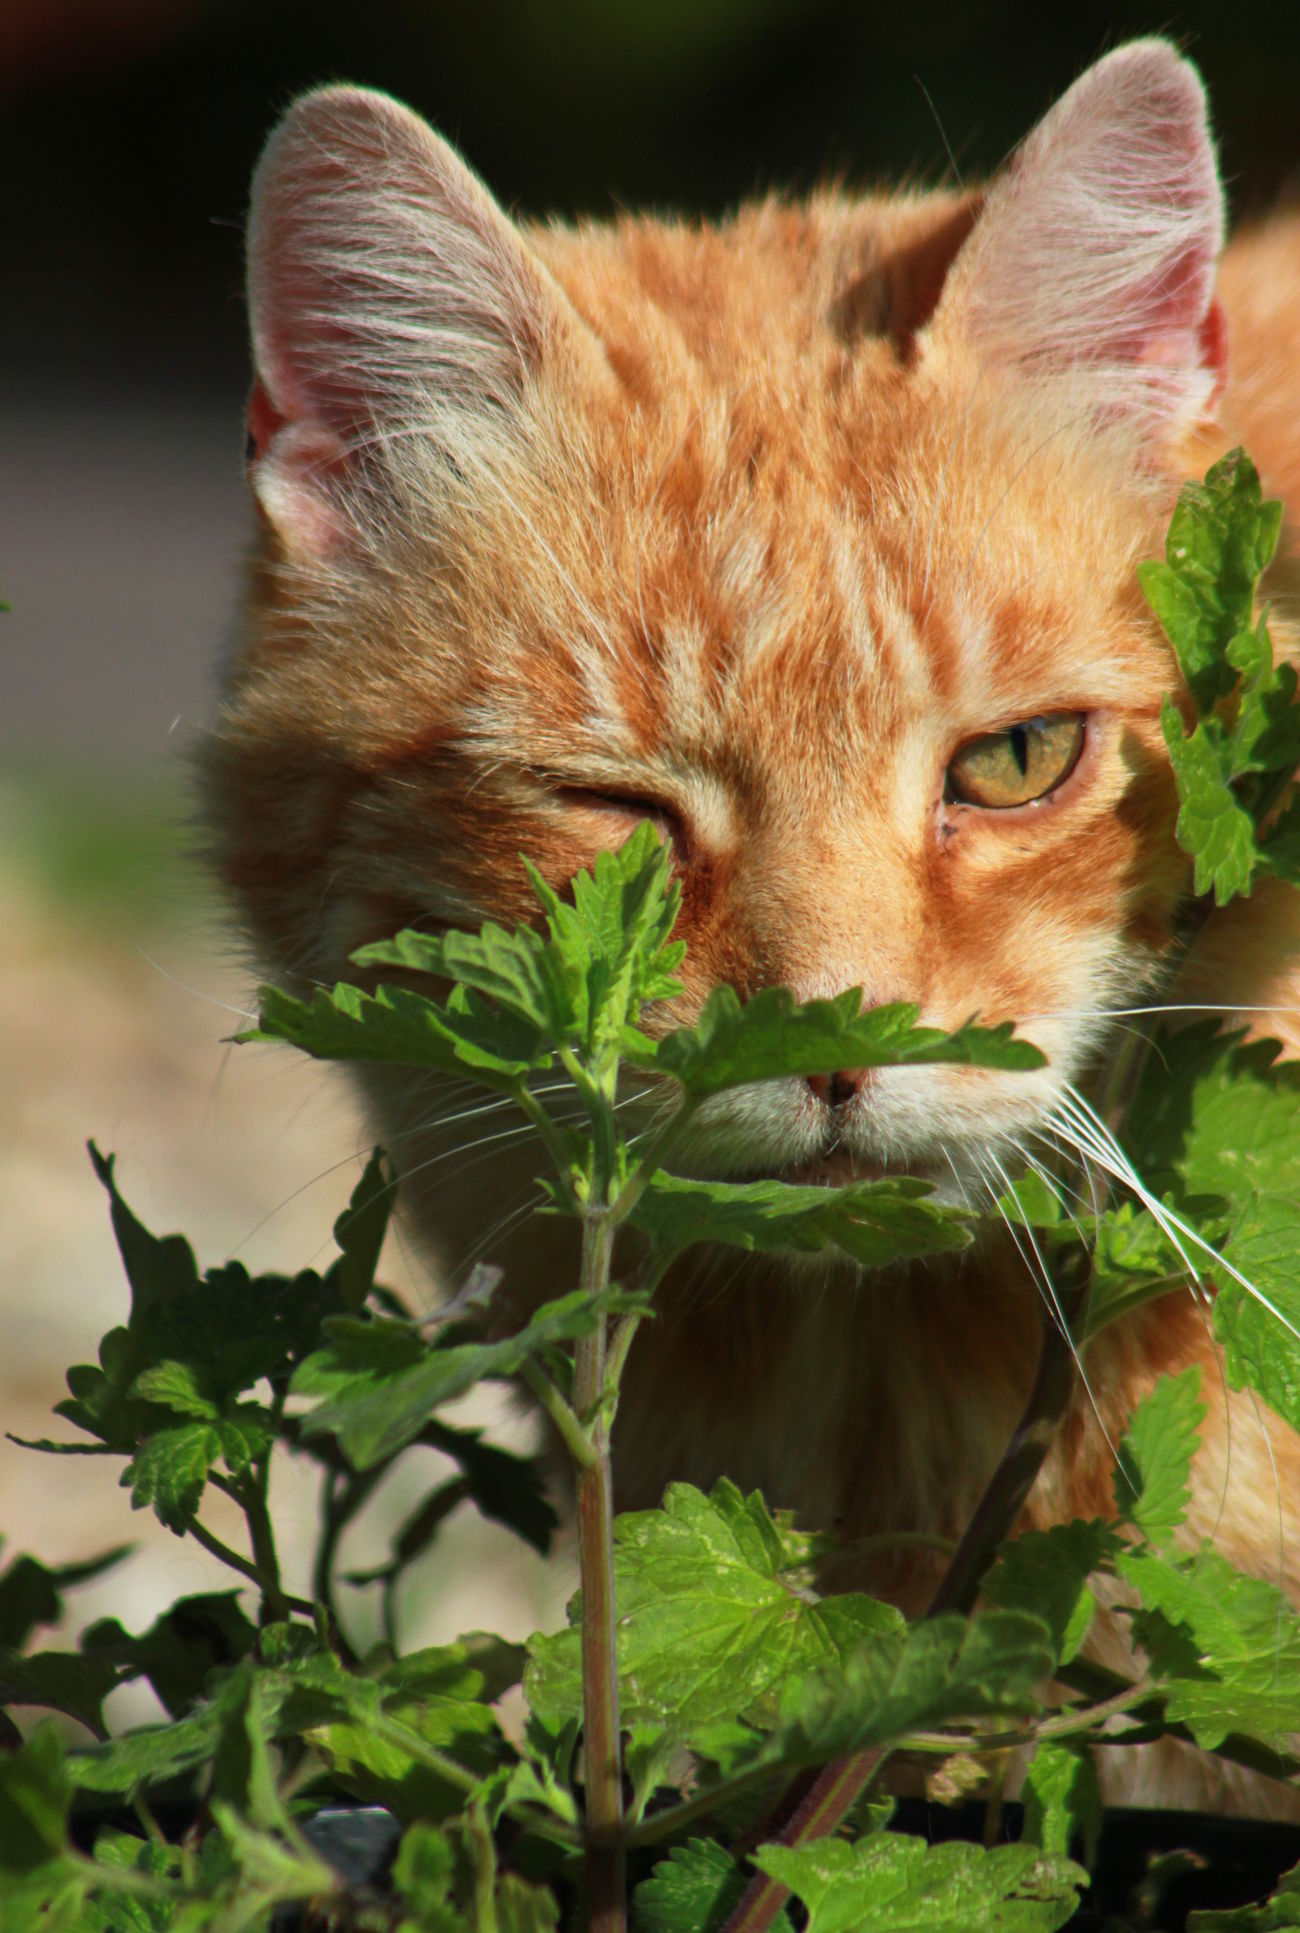 Catnip addict Animal Themes Cat Catnip Close-up Day Domestic Animals Domestic Cat Feline Ginger Cat Looking At Camera Mammal No People One Animal Outdoors Pets Plant Portrait Wink Winking Cat